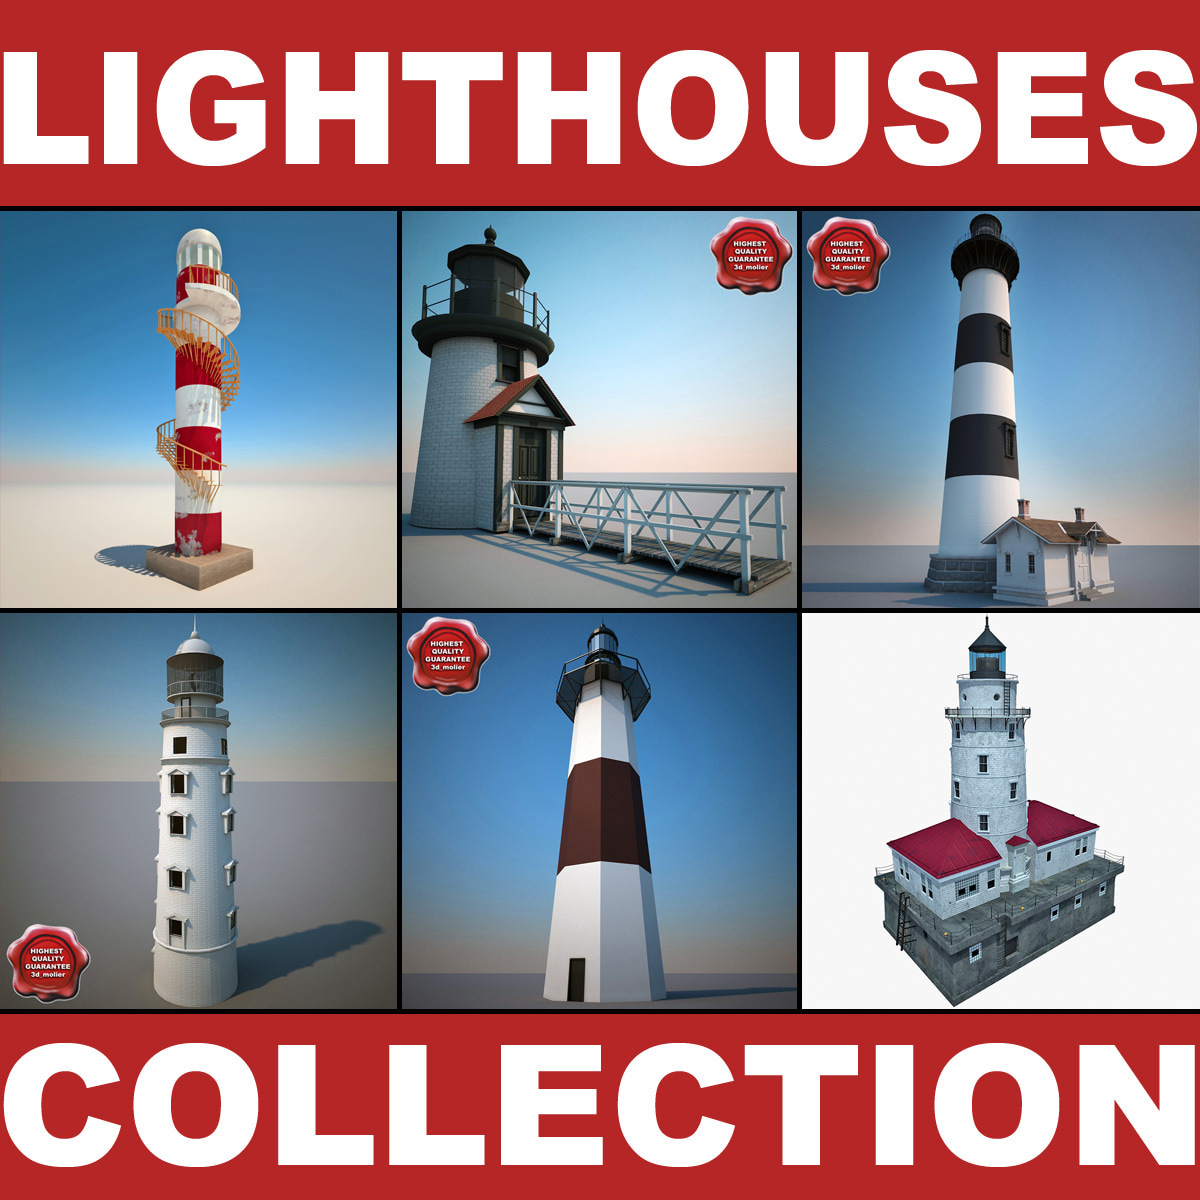 Lighthouses_Collection_v3_000.jpg